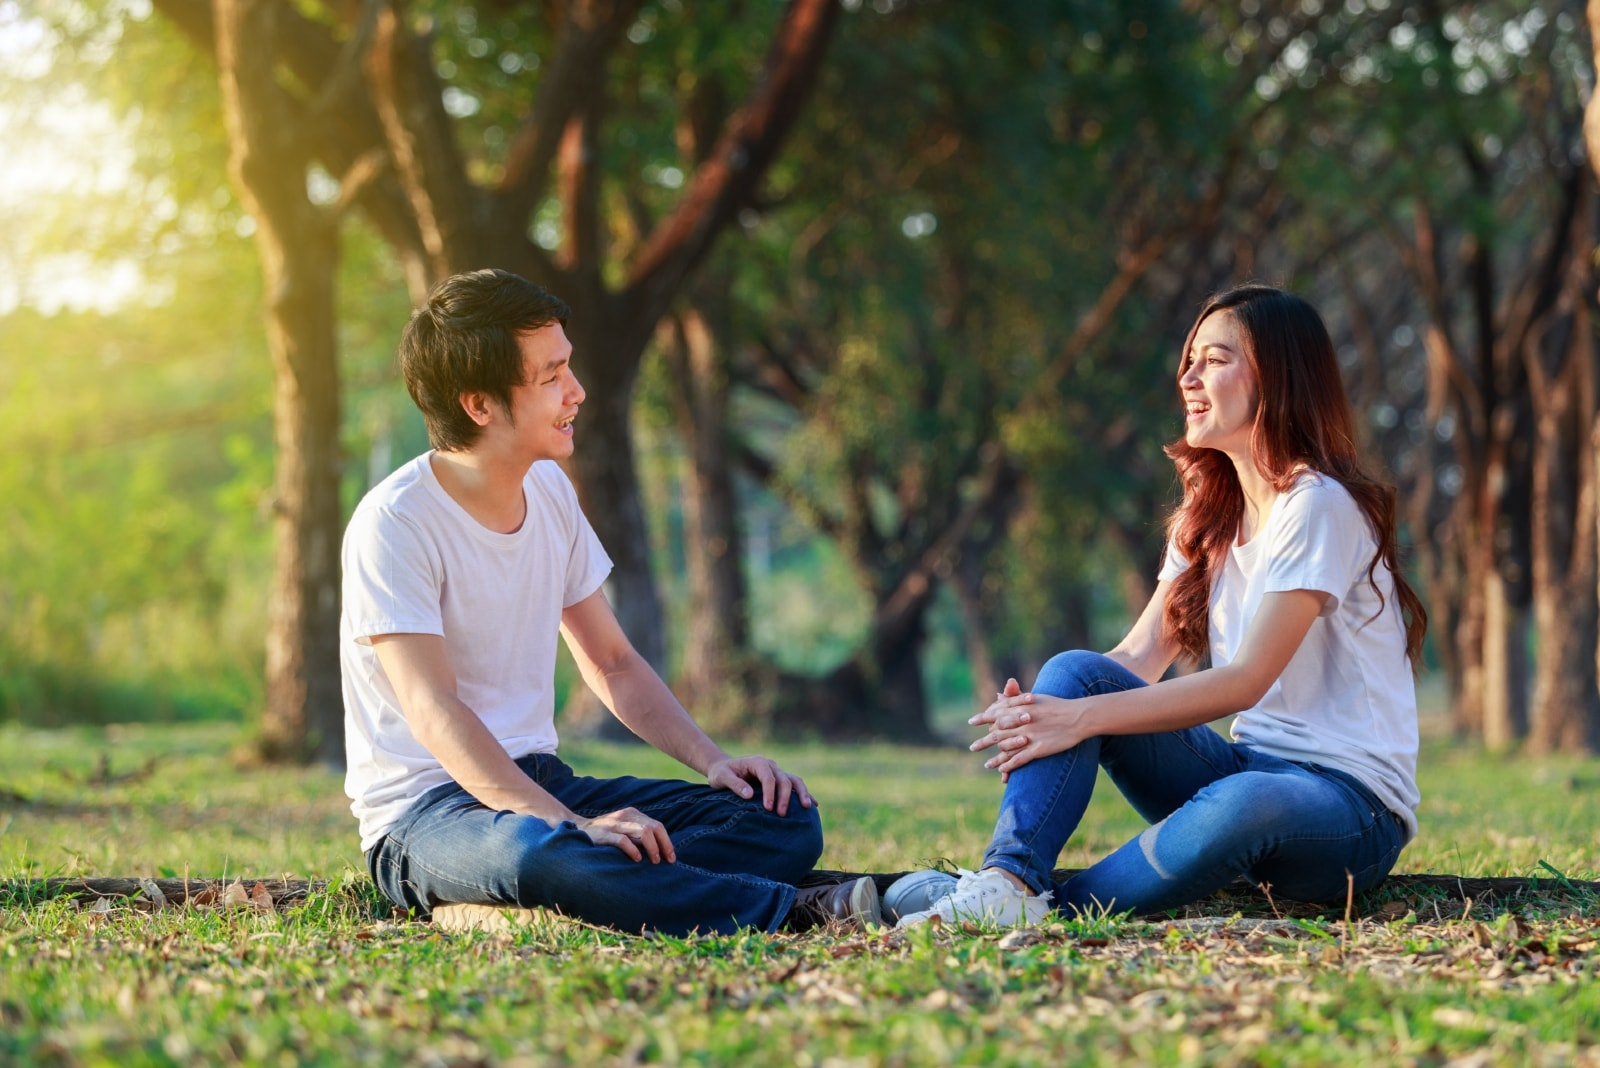 man and woman talking while sitting on grass